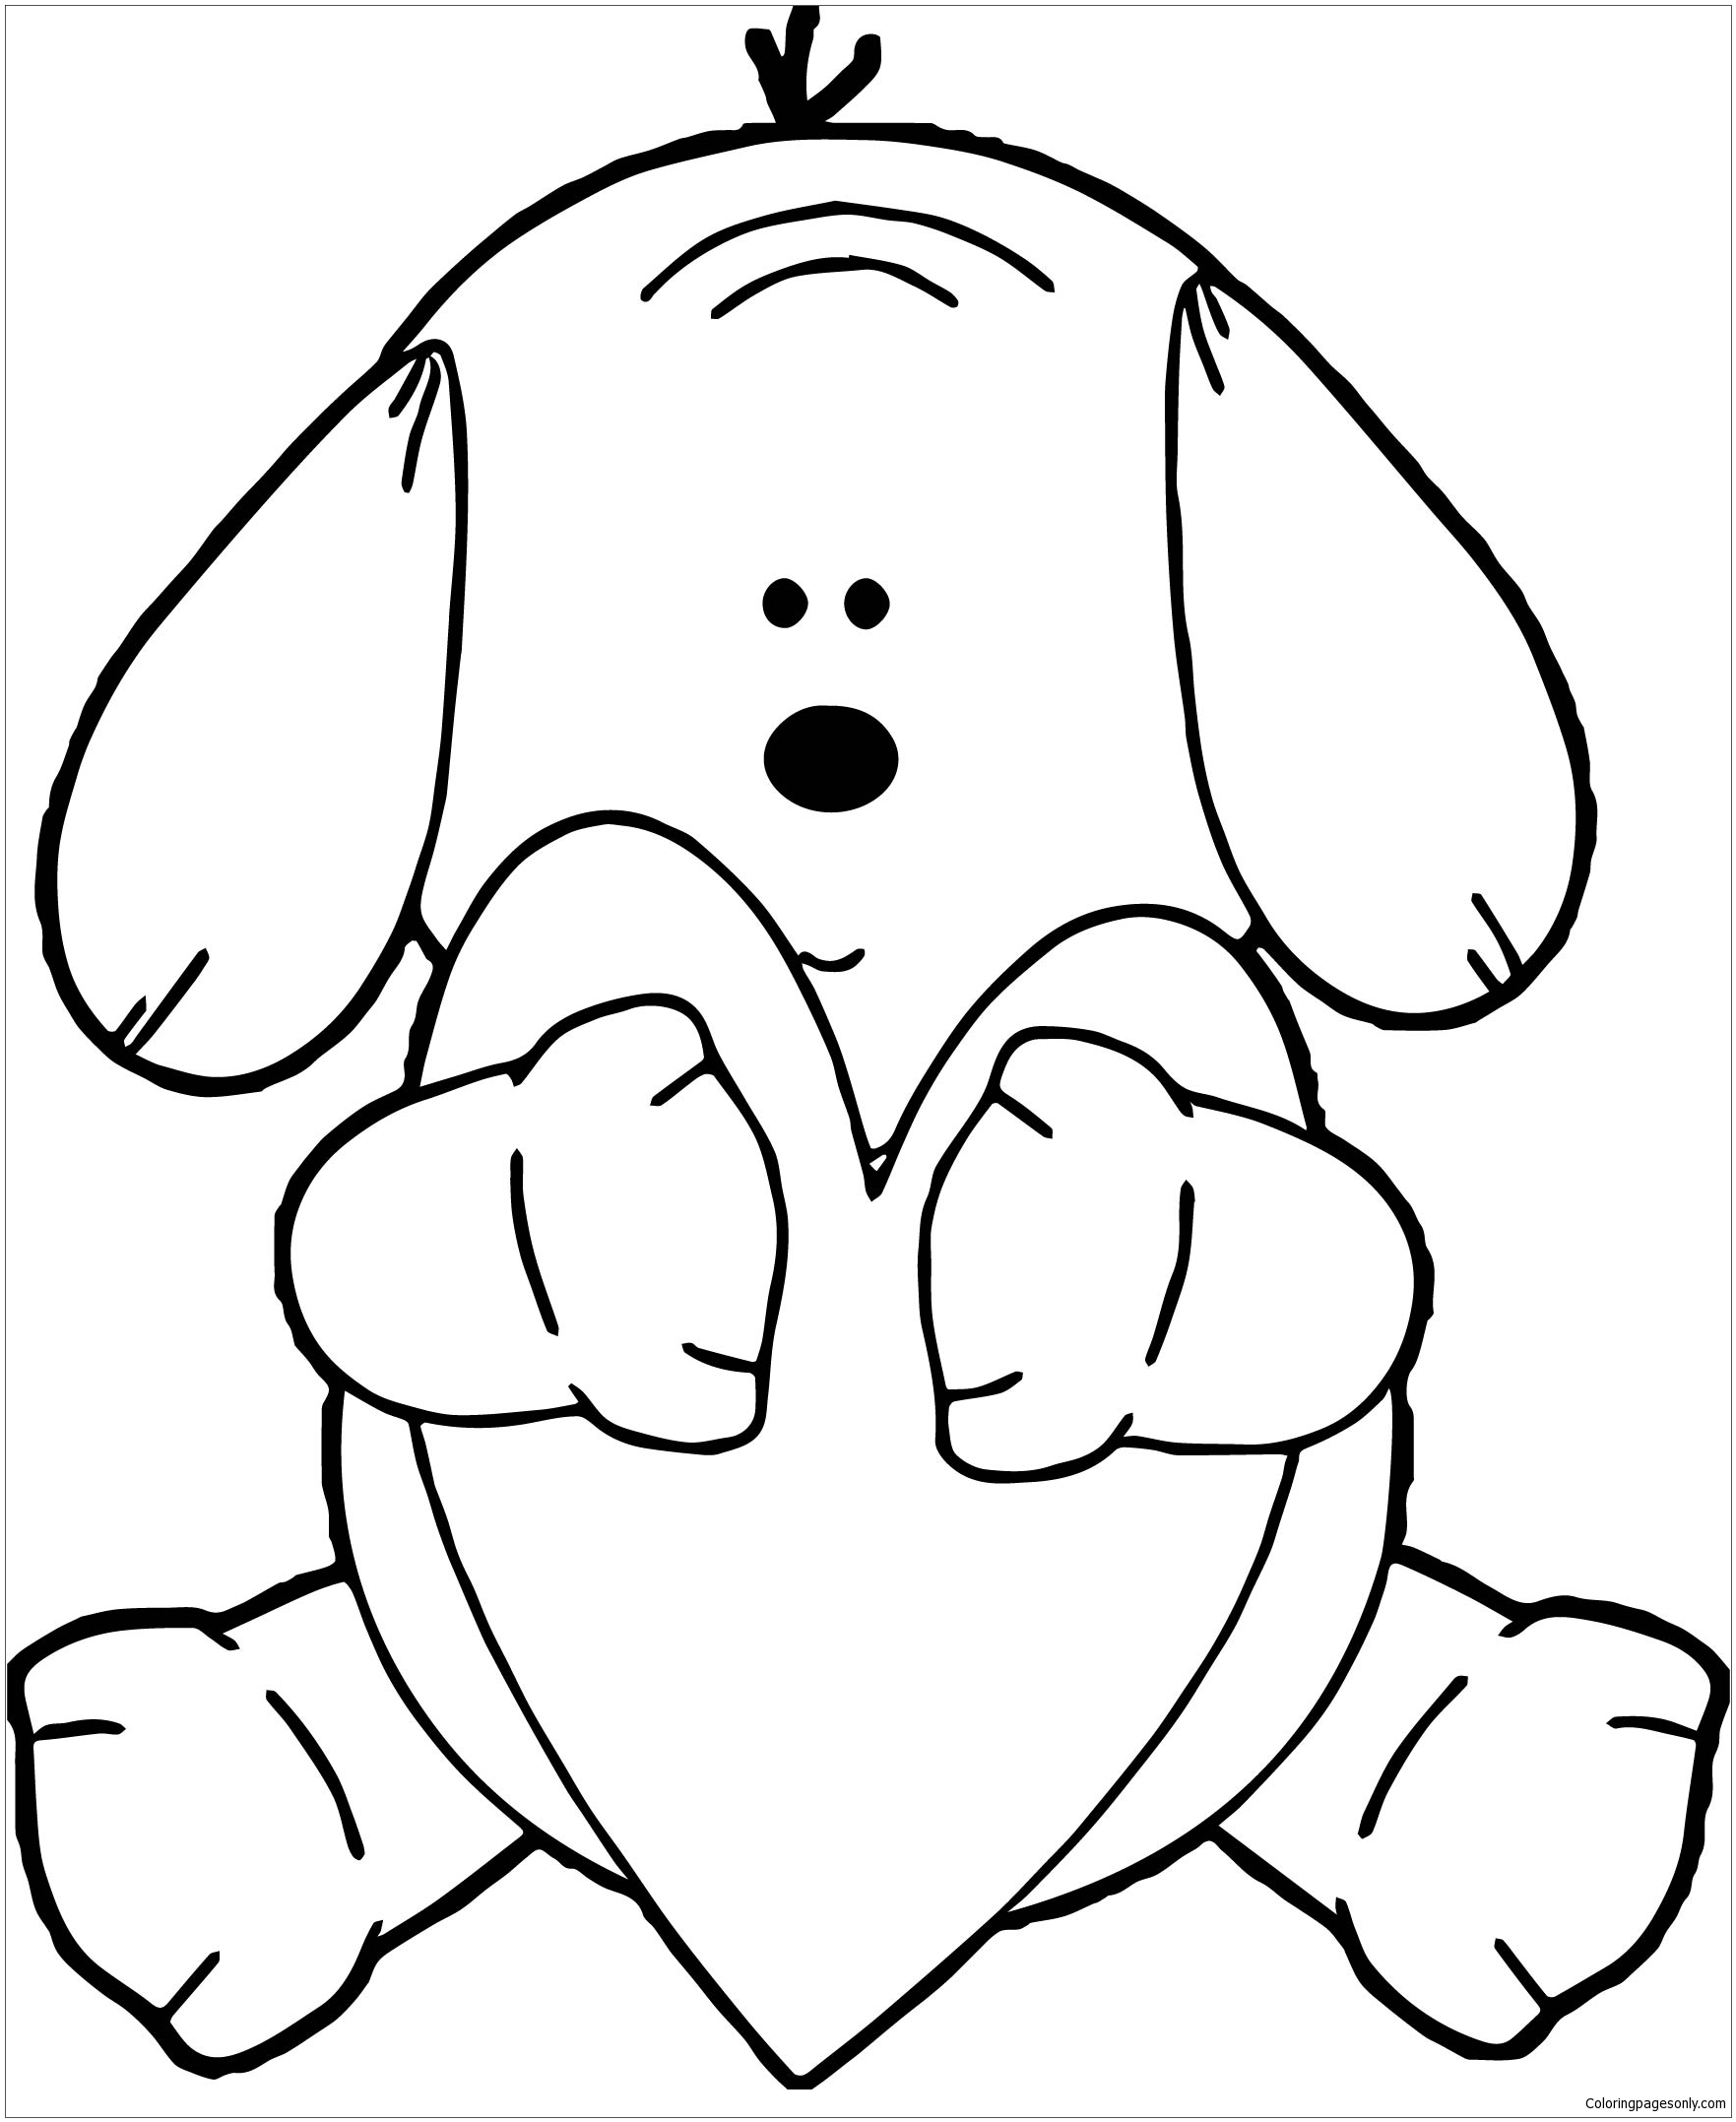 coloring pages : Free Coloring Pages To Print For Adults Best Of ... | 2155x1763